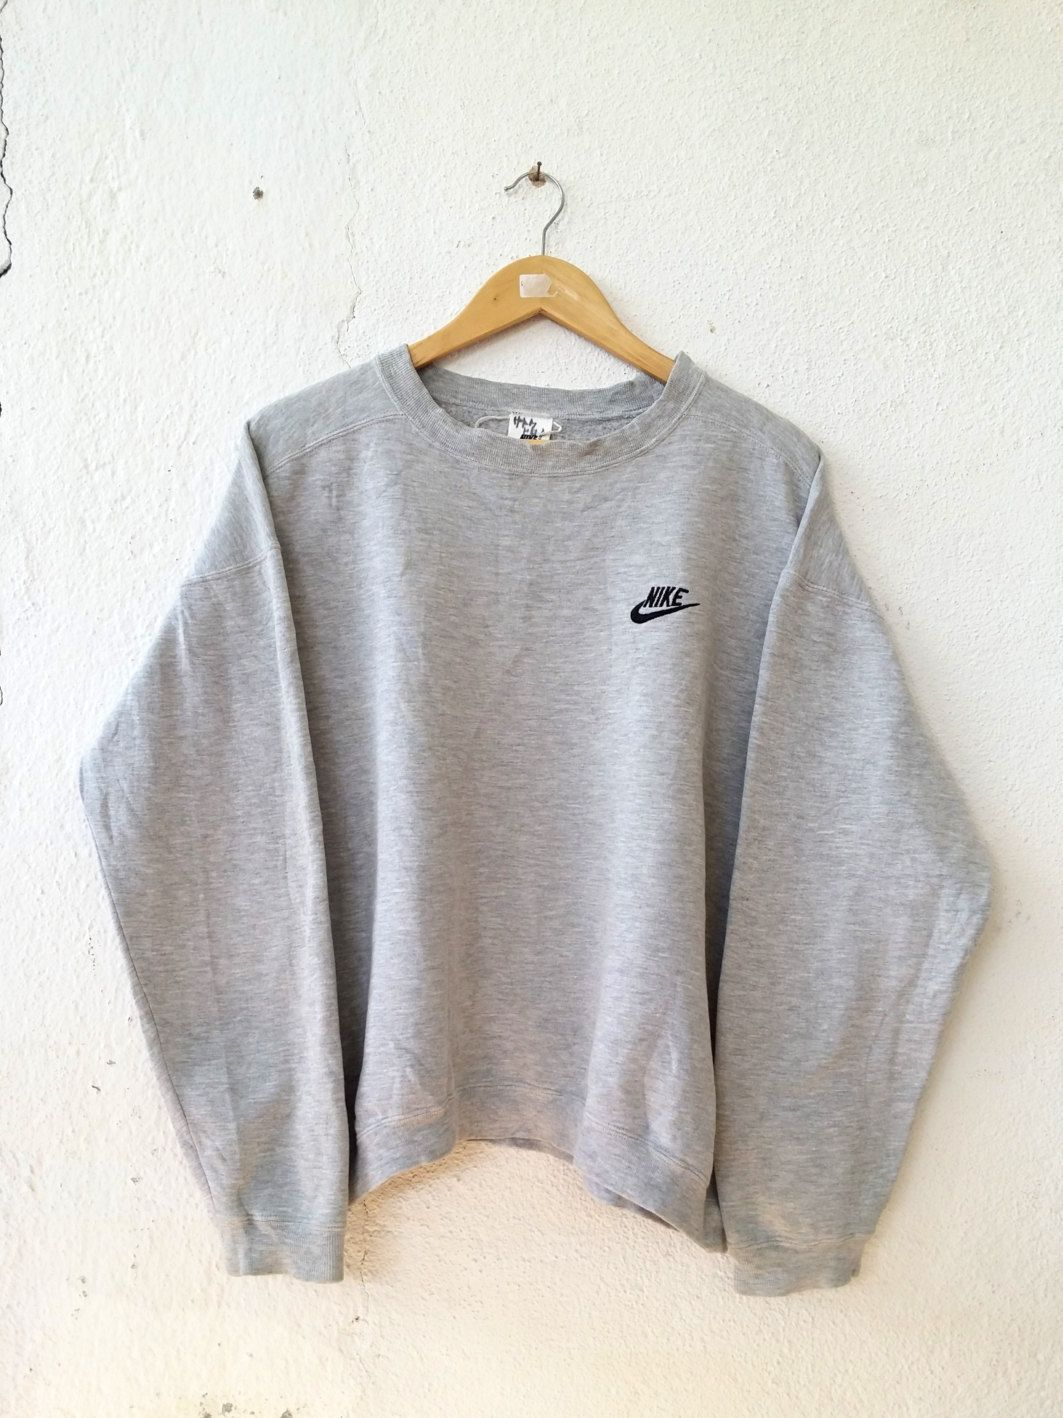 209c8249f279 Vintage 90 s NIKE Sweatshirt with Small Logo Spell Out Embroidered Sweater  Jumper Pullover Swag Hip Hop Streetwear Adult Oversize LL VSS109 by ...